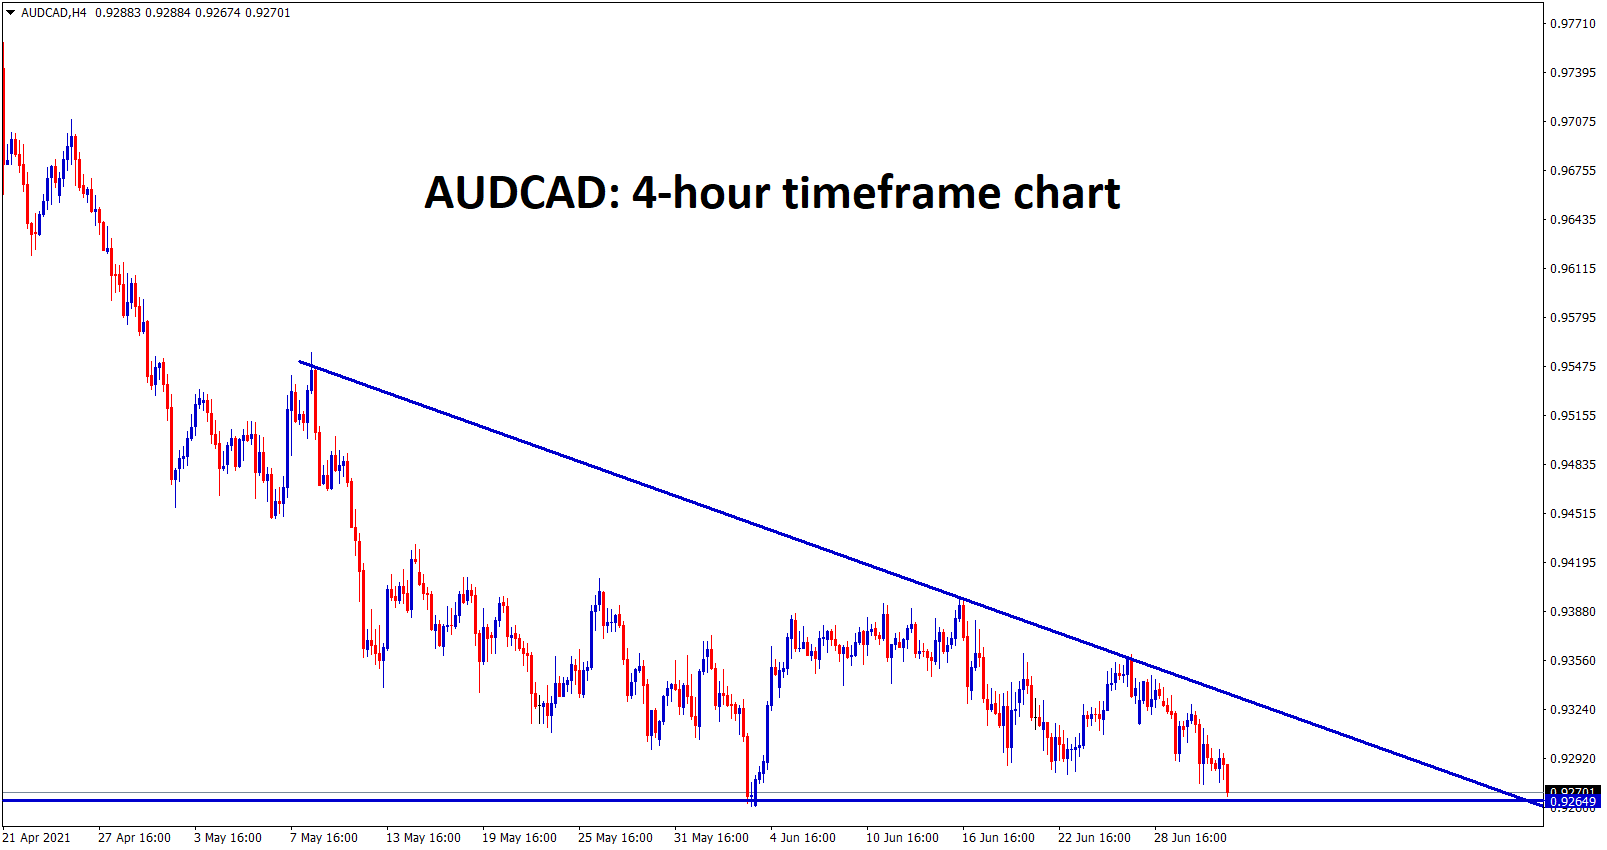 AUDCAD has formed a Descending Triangle pattern in the H4 chart